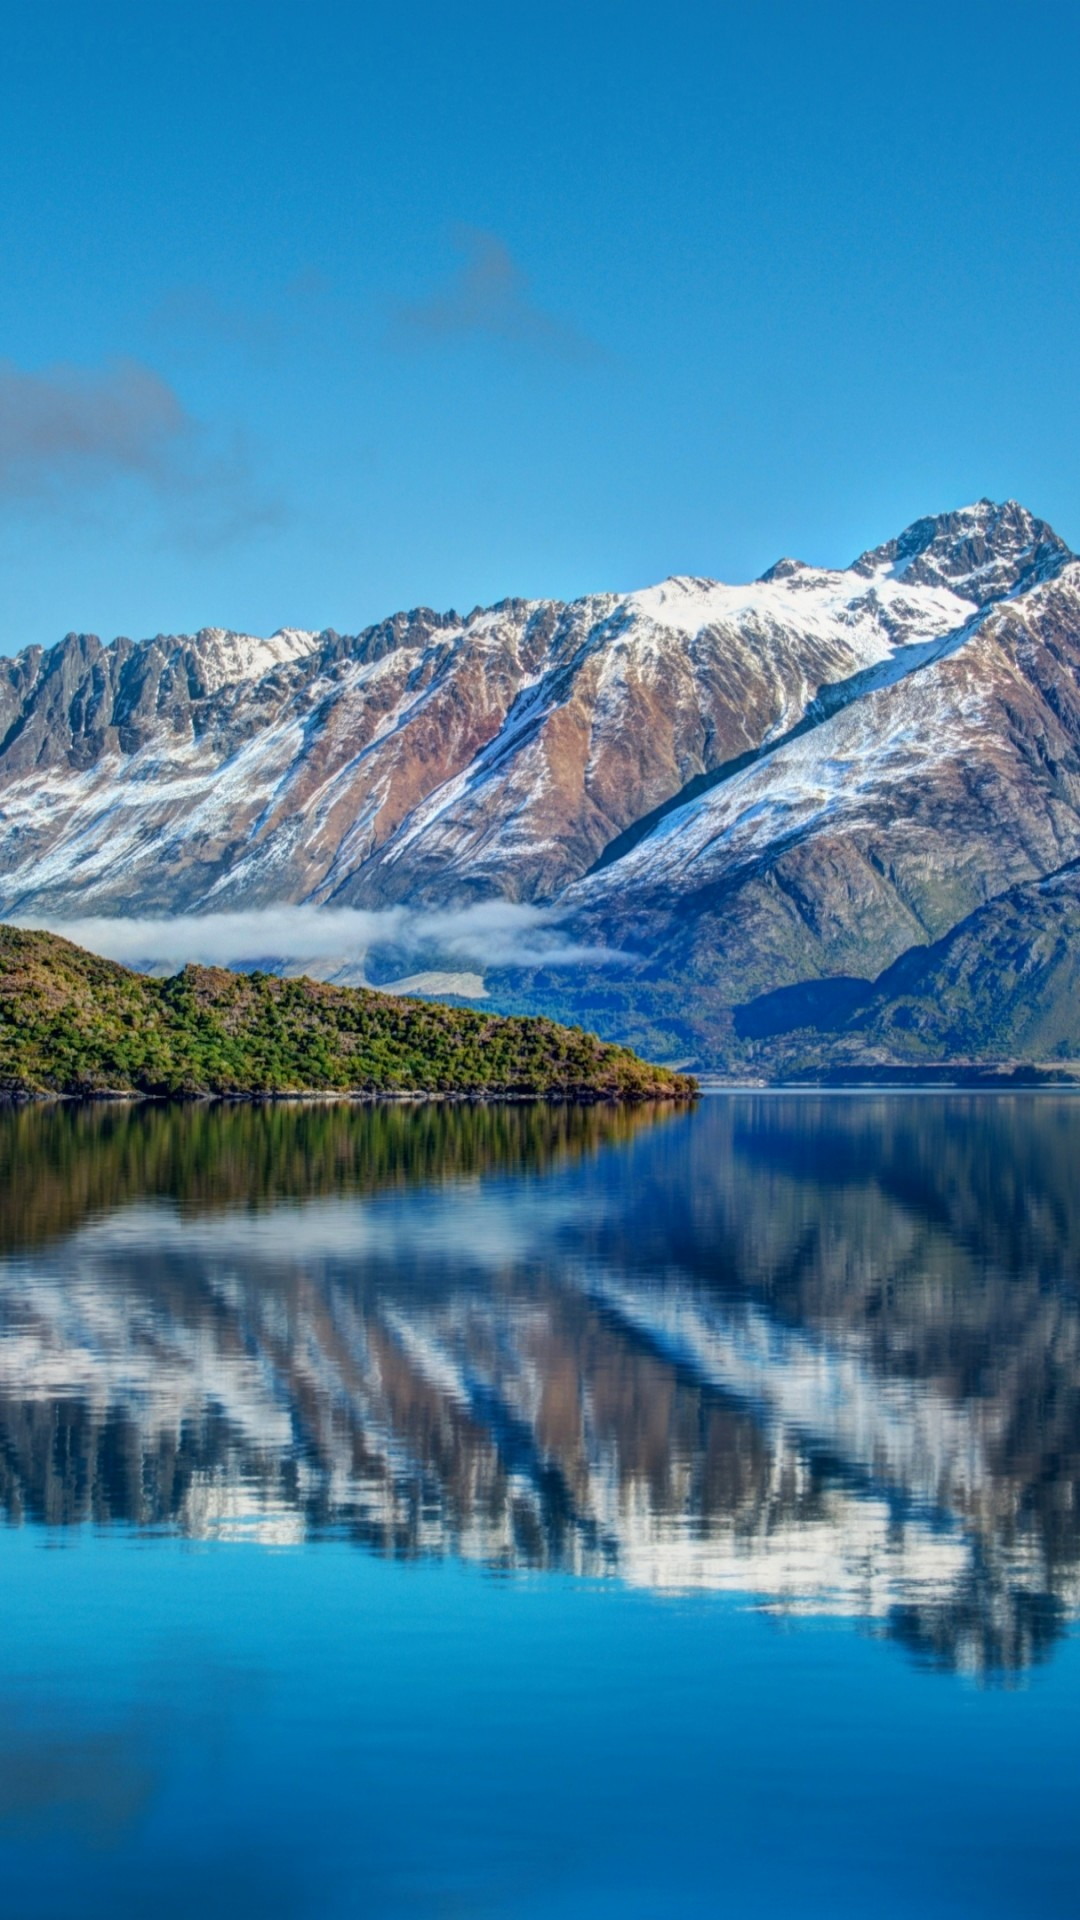 Wallpaper New Zealand, Mountain, 4k, HD Wallpaper, Lake